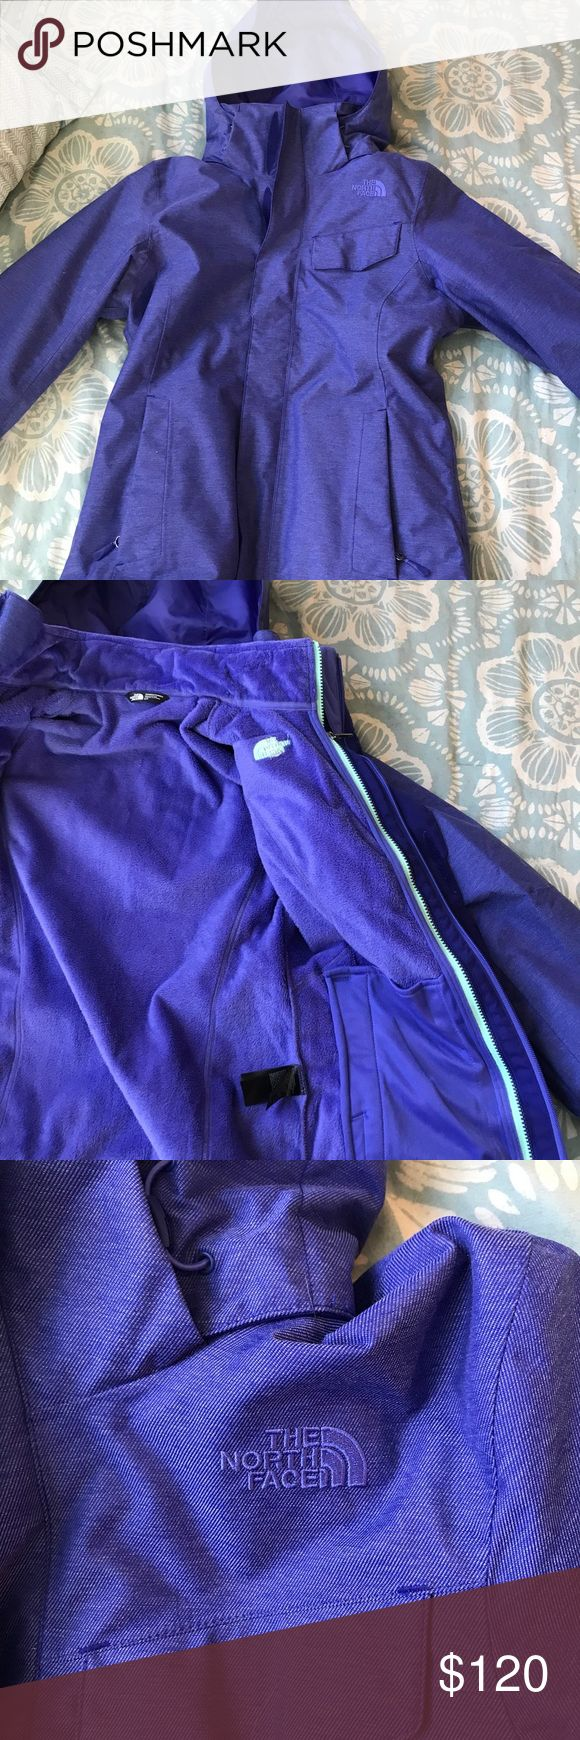 North face winter jacket Very pretty bluish purple north face winter coat! Has 2 layers, and is super soft! Message me an offer :) North Face Jackets & Coats